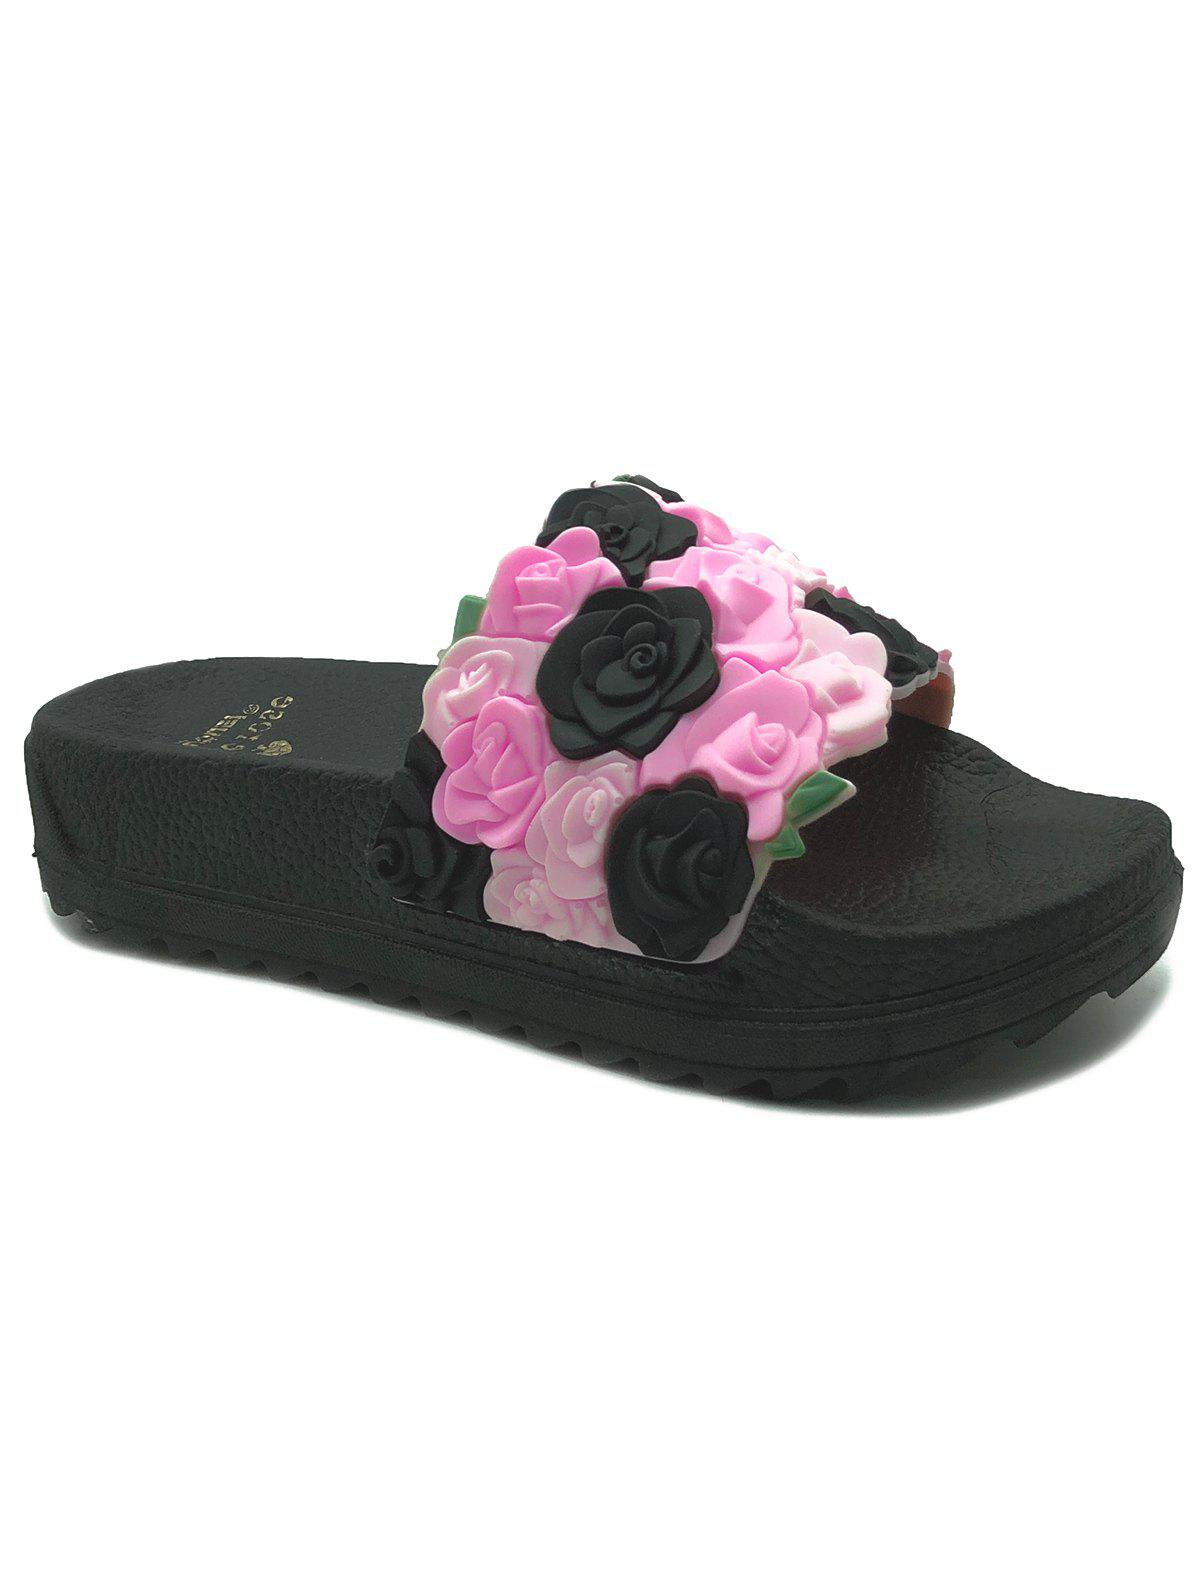 Roses Slip On Indoor Outdoor Platform Slippers - BLACK 40